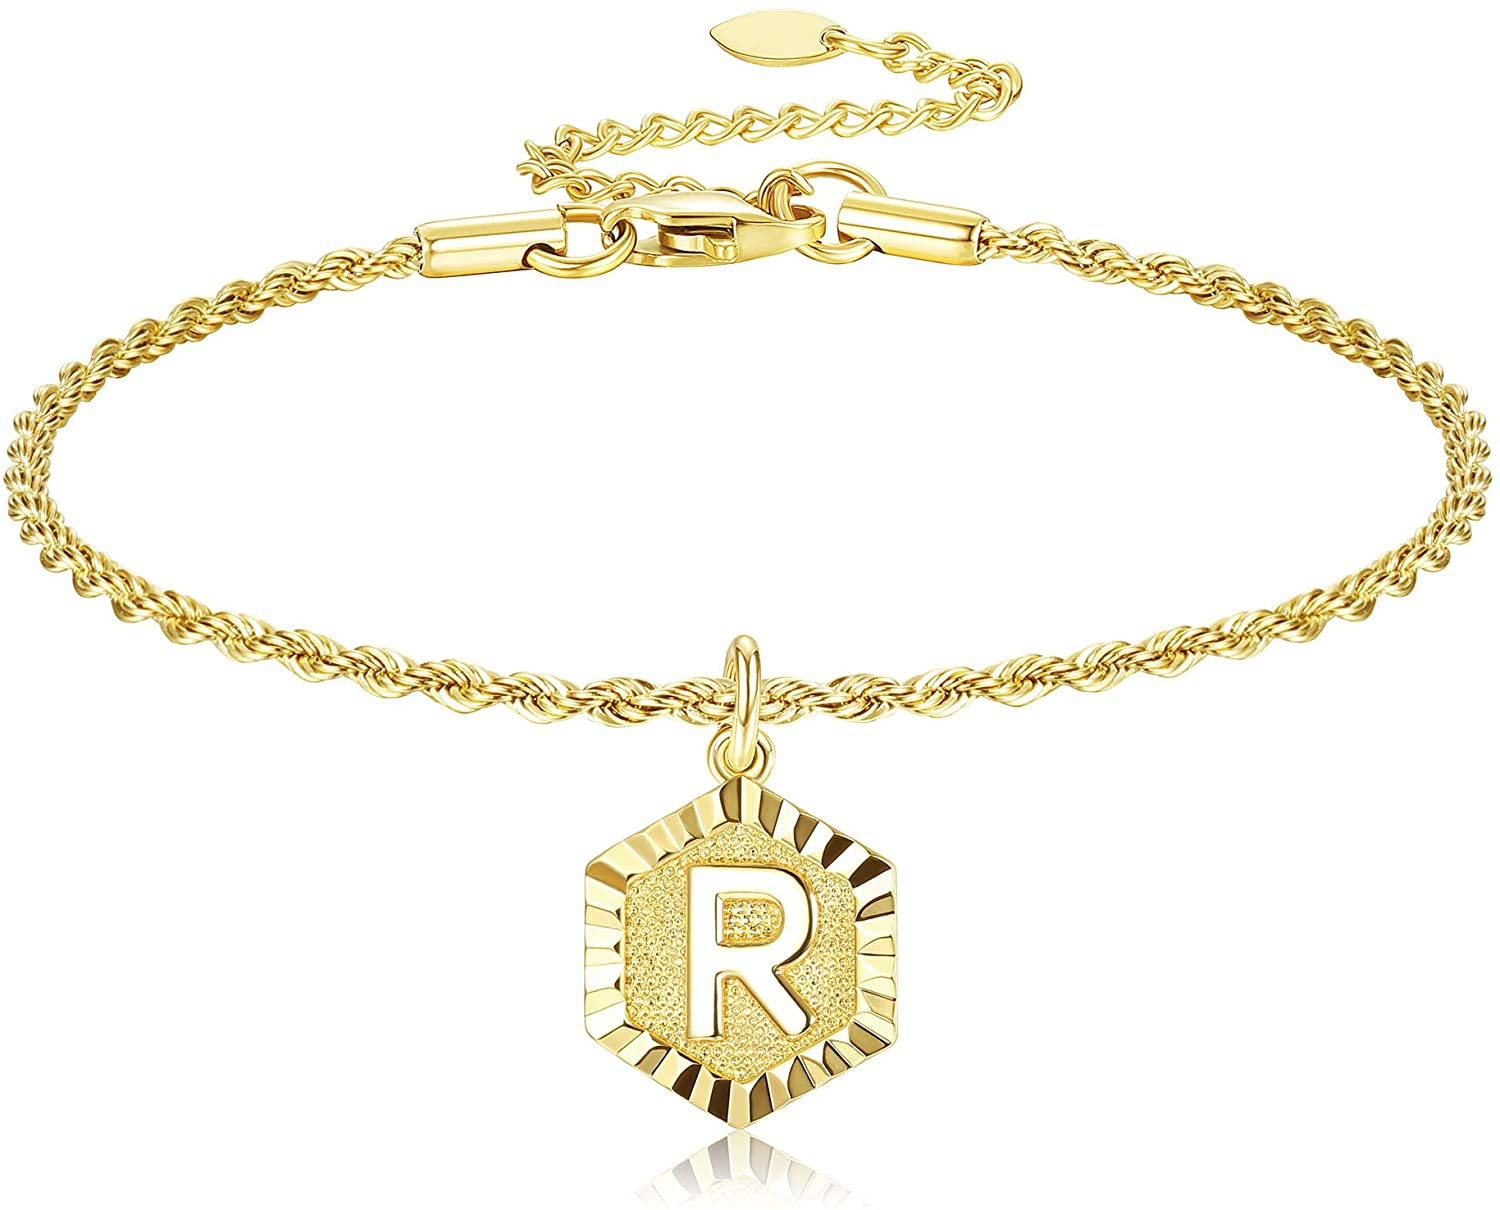 JOERICA Gold Tone Initial Anklet for Women Men Rope Chain Letter Ankle Bracelet with Alphabet Fashion Foot Jewelry with Extension Chain